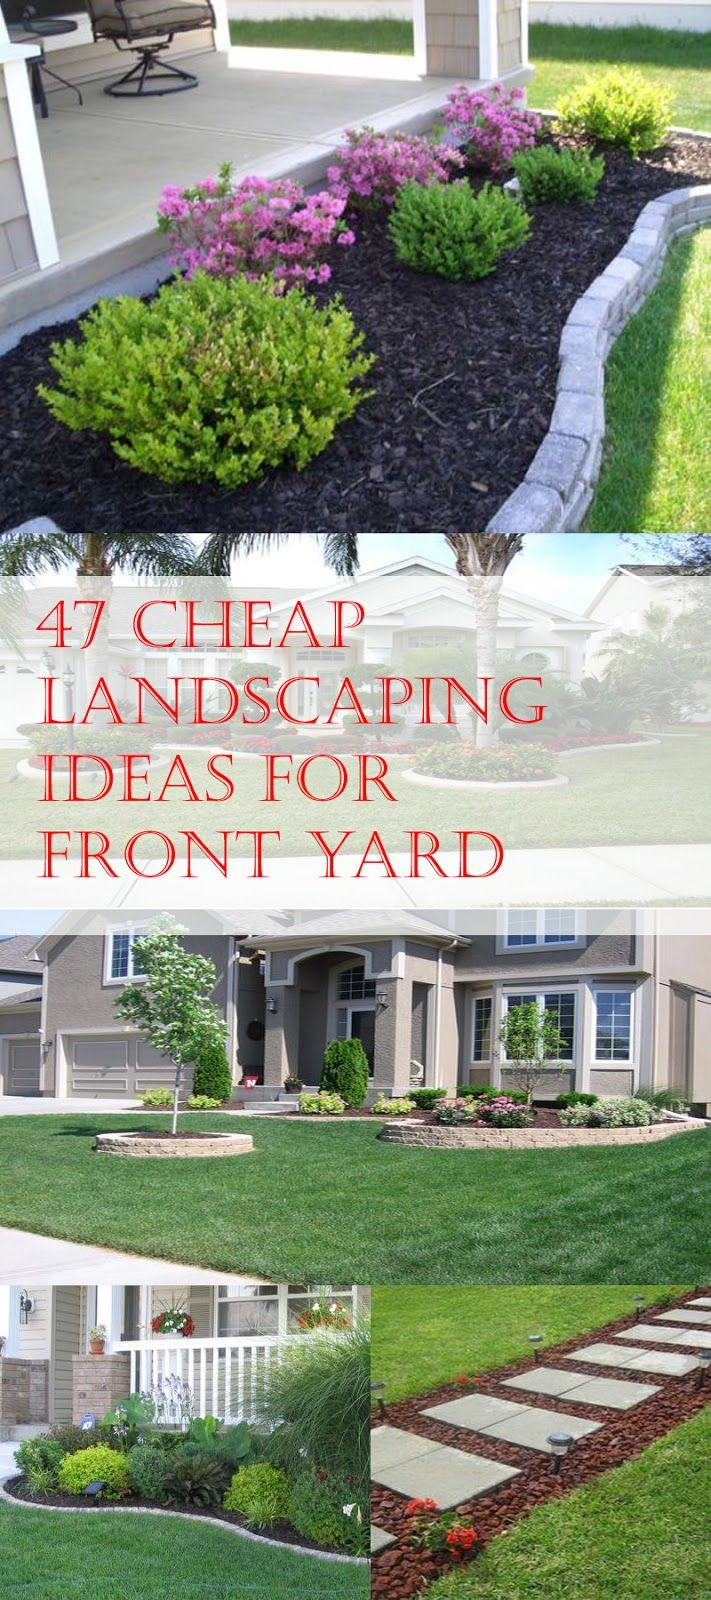 I Think Landscaping Ideas For Front Yard Must Not Be Ignored Now A Days People Do Pay More Attention On Interior And Backyards Landscapin